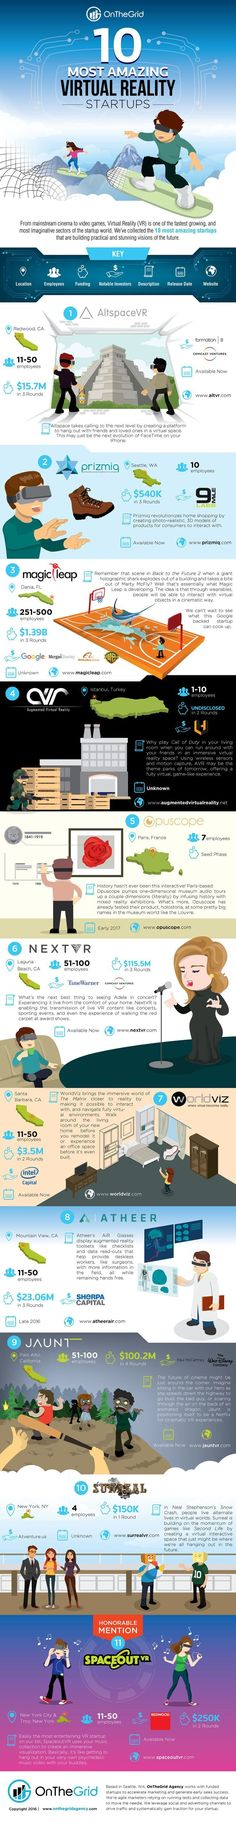 #VR #VRGames #Drone #Gaming #VR #VRGames #Drone #Gaming Awesome Virtual Reality Startups - Business Infographic. Topic: tech agency, augmented actuality, ar, oculus, magic leap, vr video video games. AR, augmented, Awesome, enterprise, Co... actuality, AR, augmented, Awesome, business, drone, firm, games, gaming, Infographic, leap, magic, Oculus, reality, Startups, tech, Topic, video, virtual, VR, VR Pics, vrgames #Actuality #AR #Augmented #Awesome #Business #Drone #Firm #G